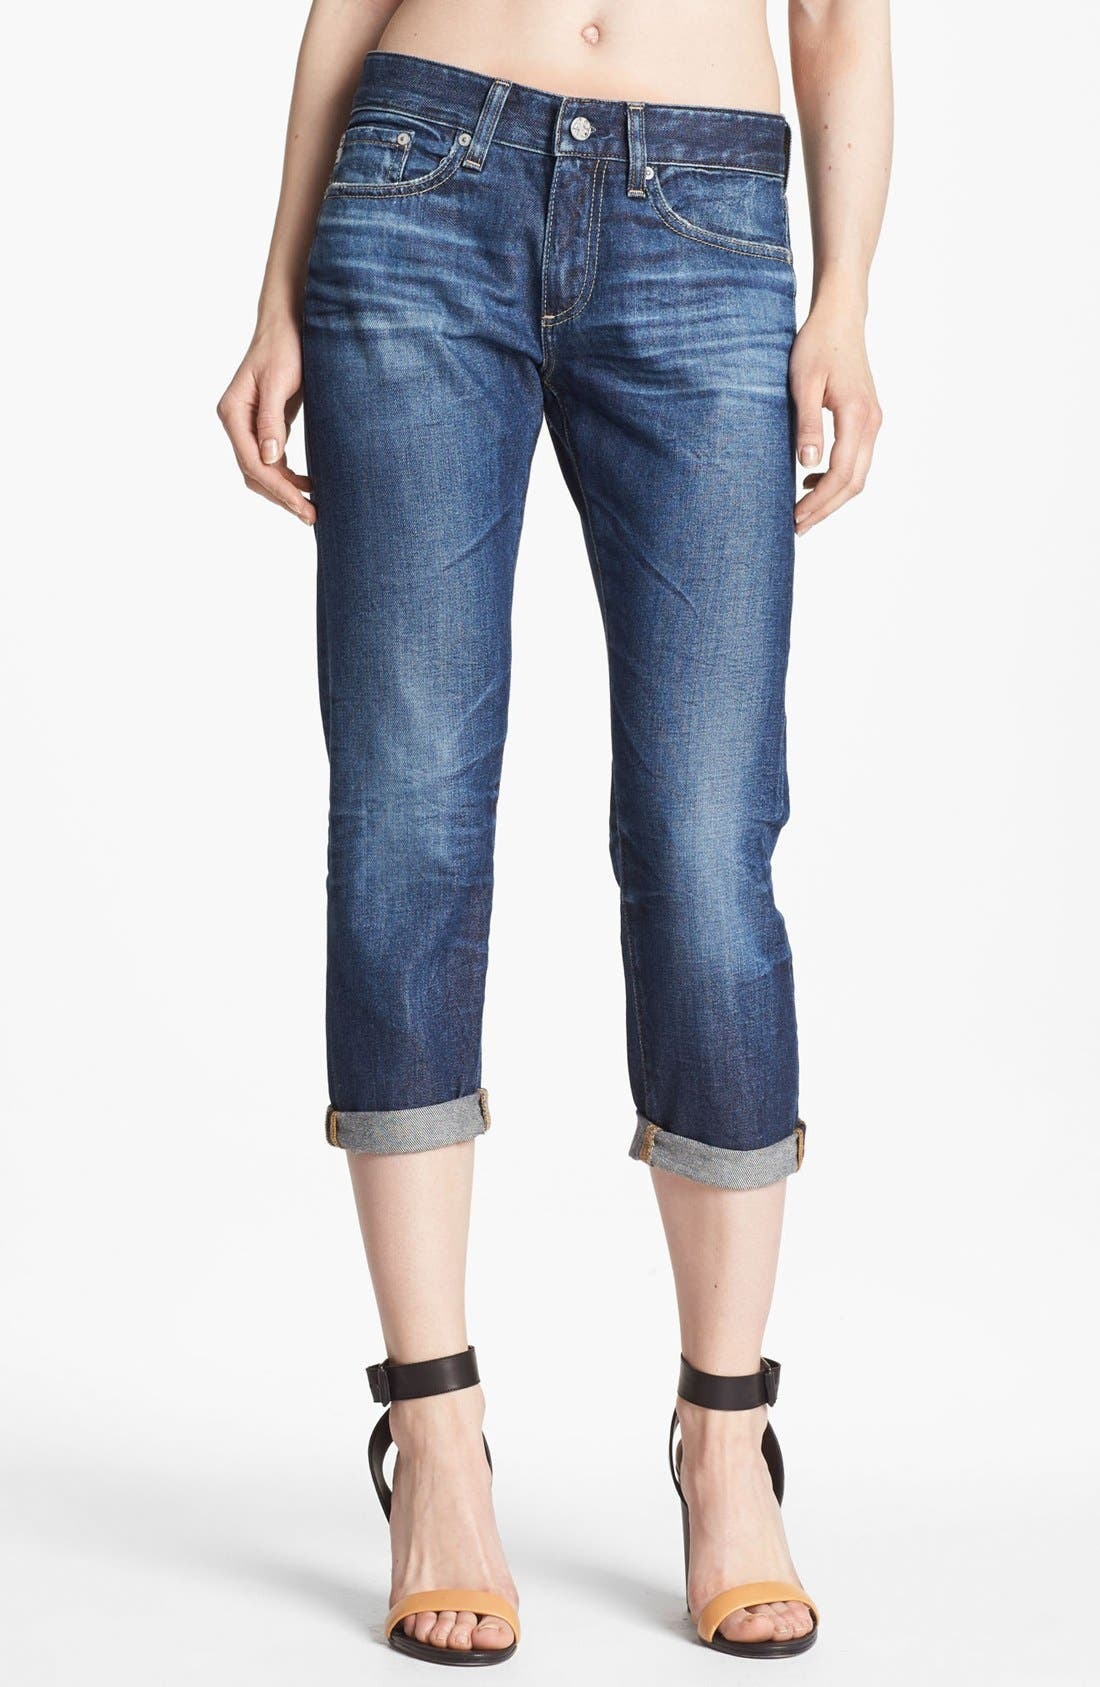 Alternate Image 1 Selected - AG Jeans 'Piper' Crop Slouchy Slim Jeans (Five Year Blue)